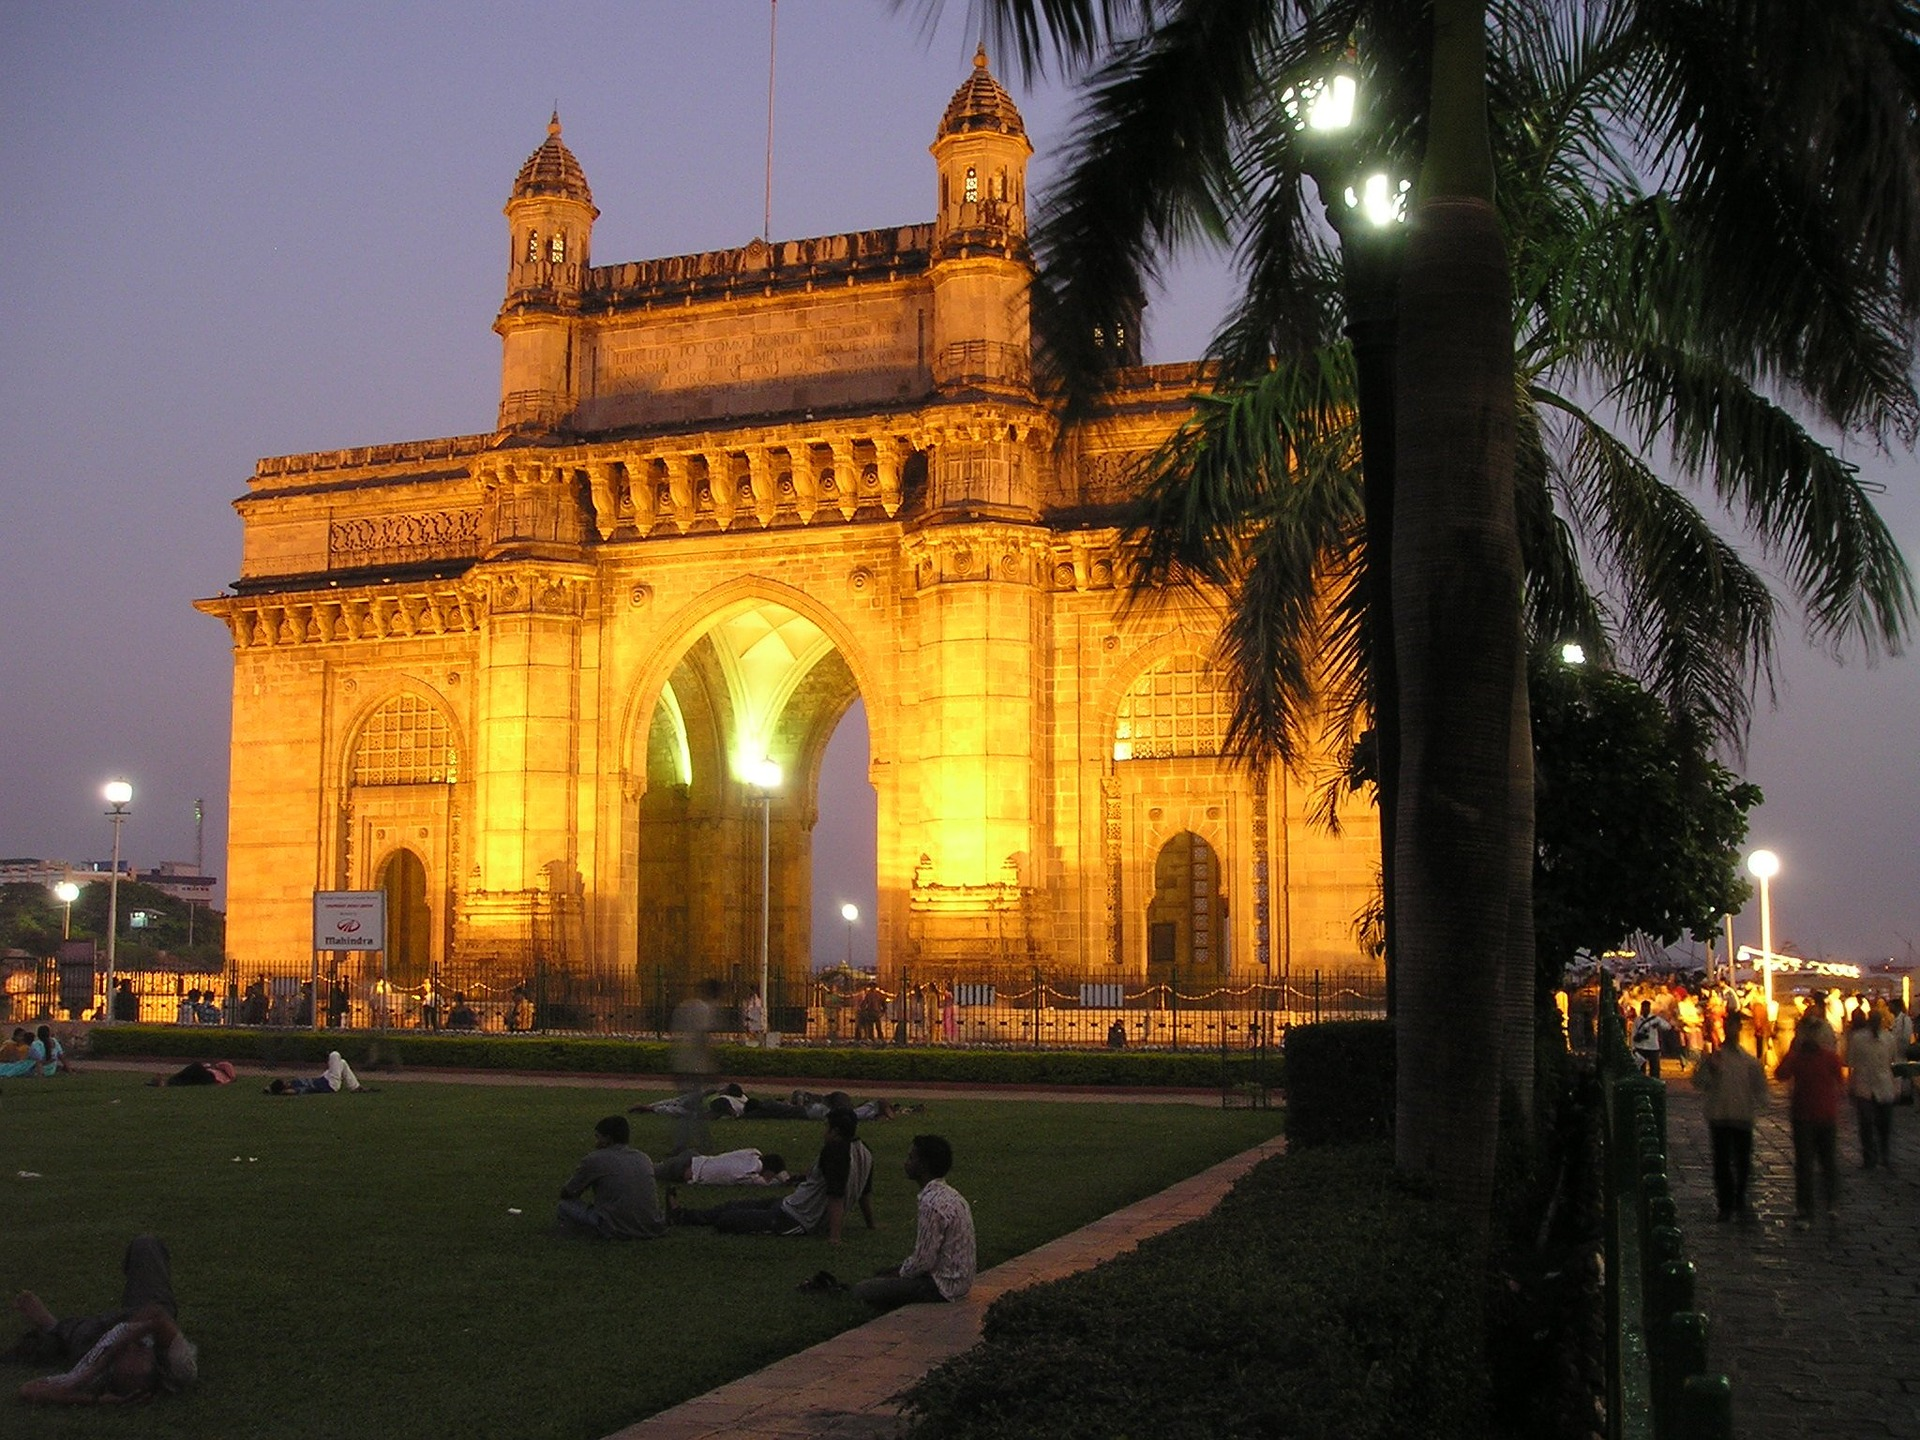 Visit Mumbai, formerly known as Bombay, in our 2017 tour of India and Dubai